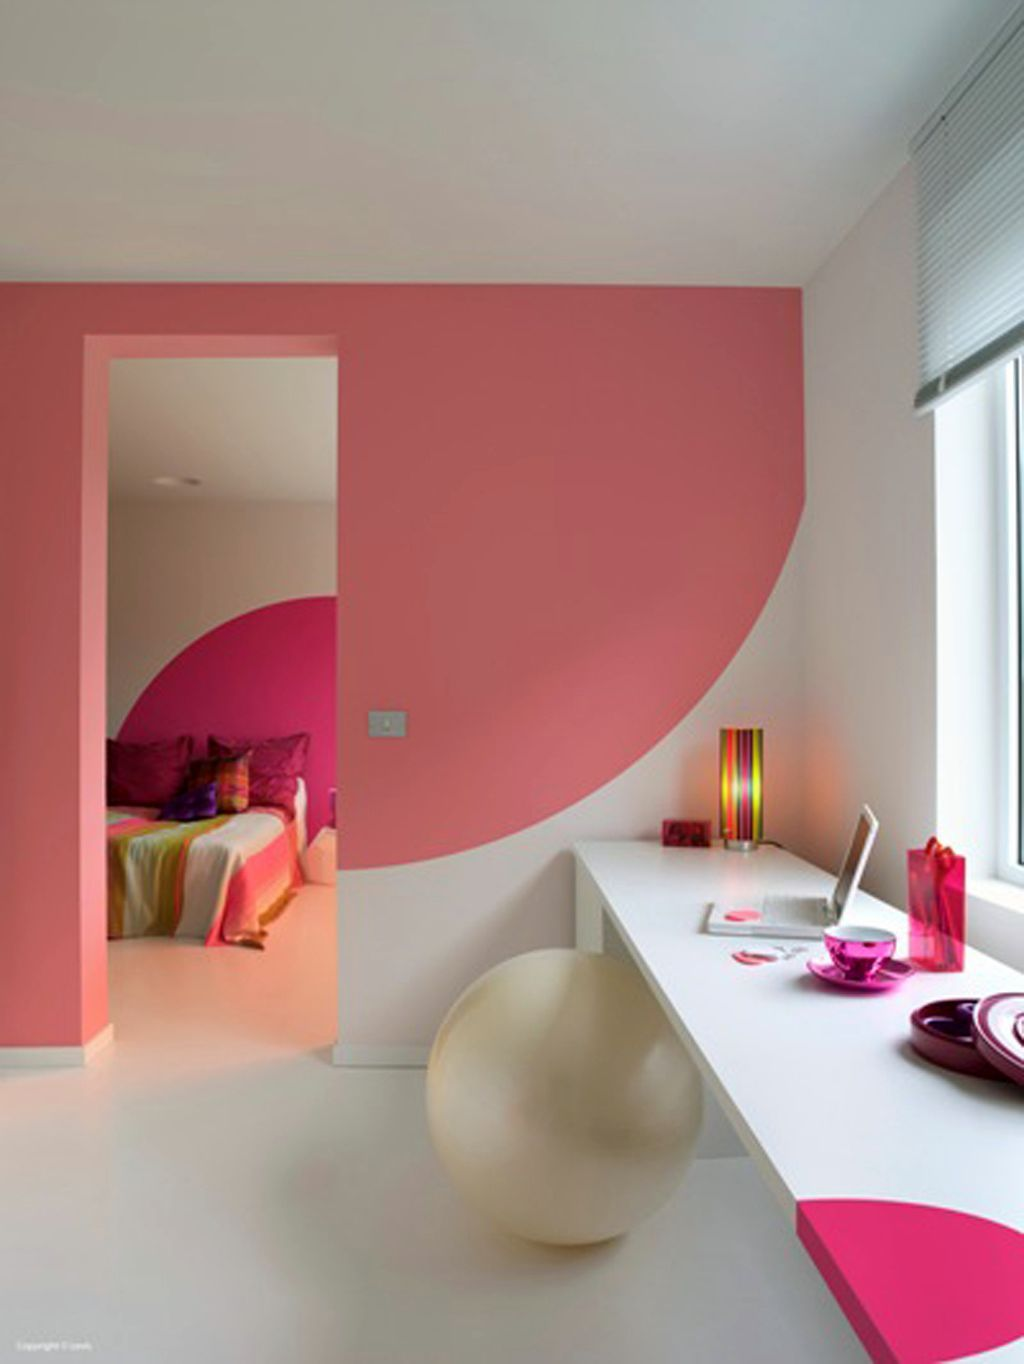 Image Cool Bedroom Paint Designs Half Circle Pink Wall Painting